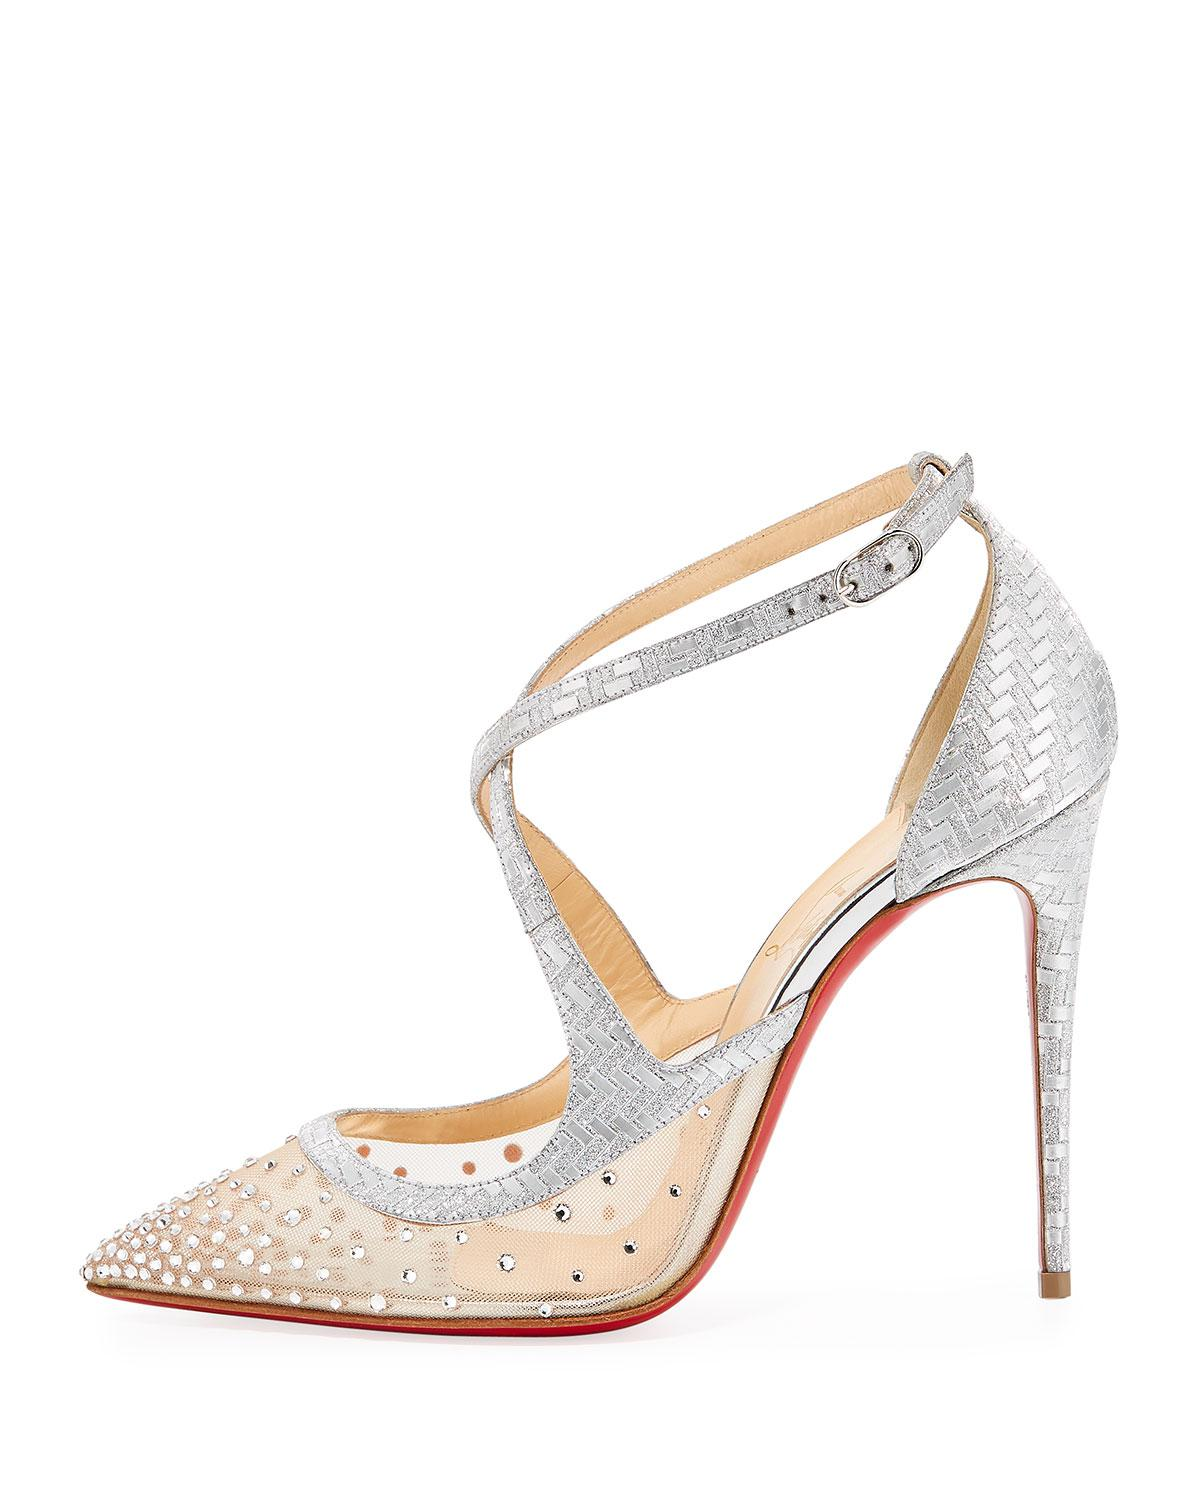 f4eff61c34b Lyst - Christian Louboutin Twistissima Strass Strappy Red Sole Pumps